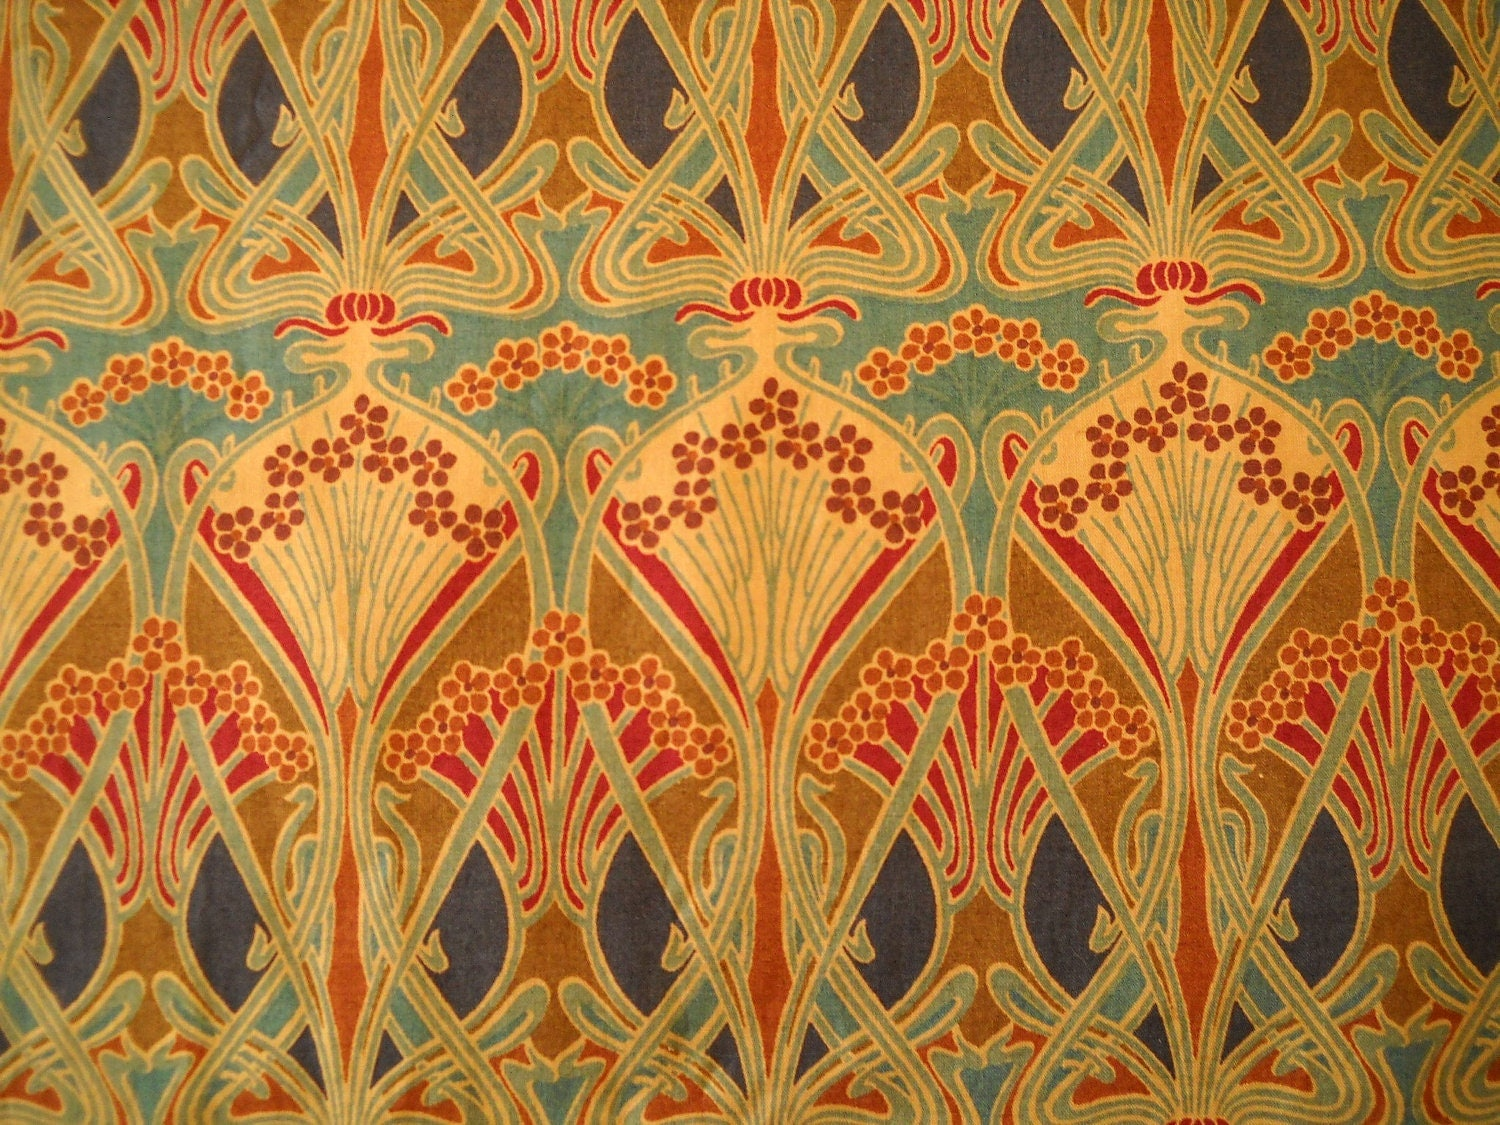 Color palette art nouveau - 69 Best Images About Fabric Patterns On Pinterest African Patterns Marimekko Fabric And African Fabric